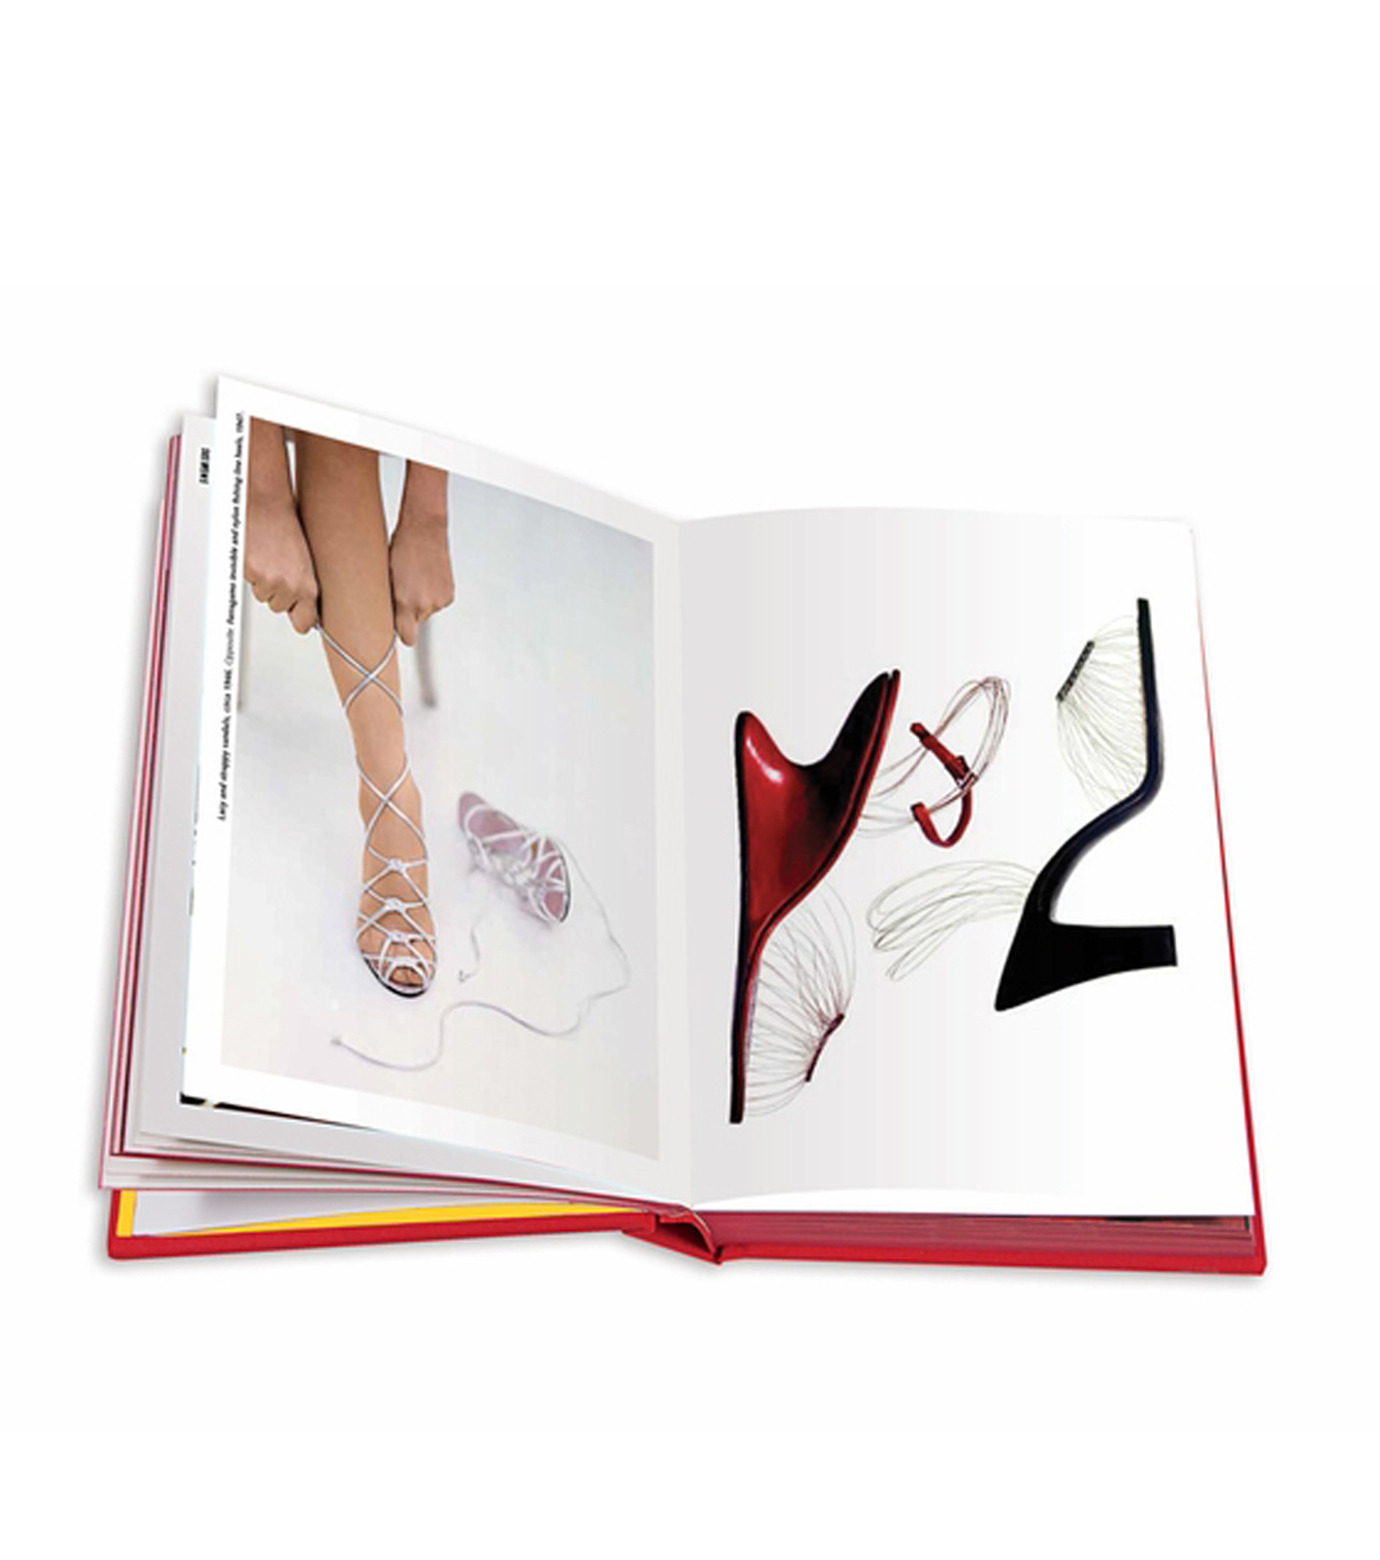 Assouline(アスリーヌ)のThe Shoe Book-RED(インテリア/OTHER-GOODS/interior/OTHER-GOODS)-978161428153-62 拡大詳細画像6